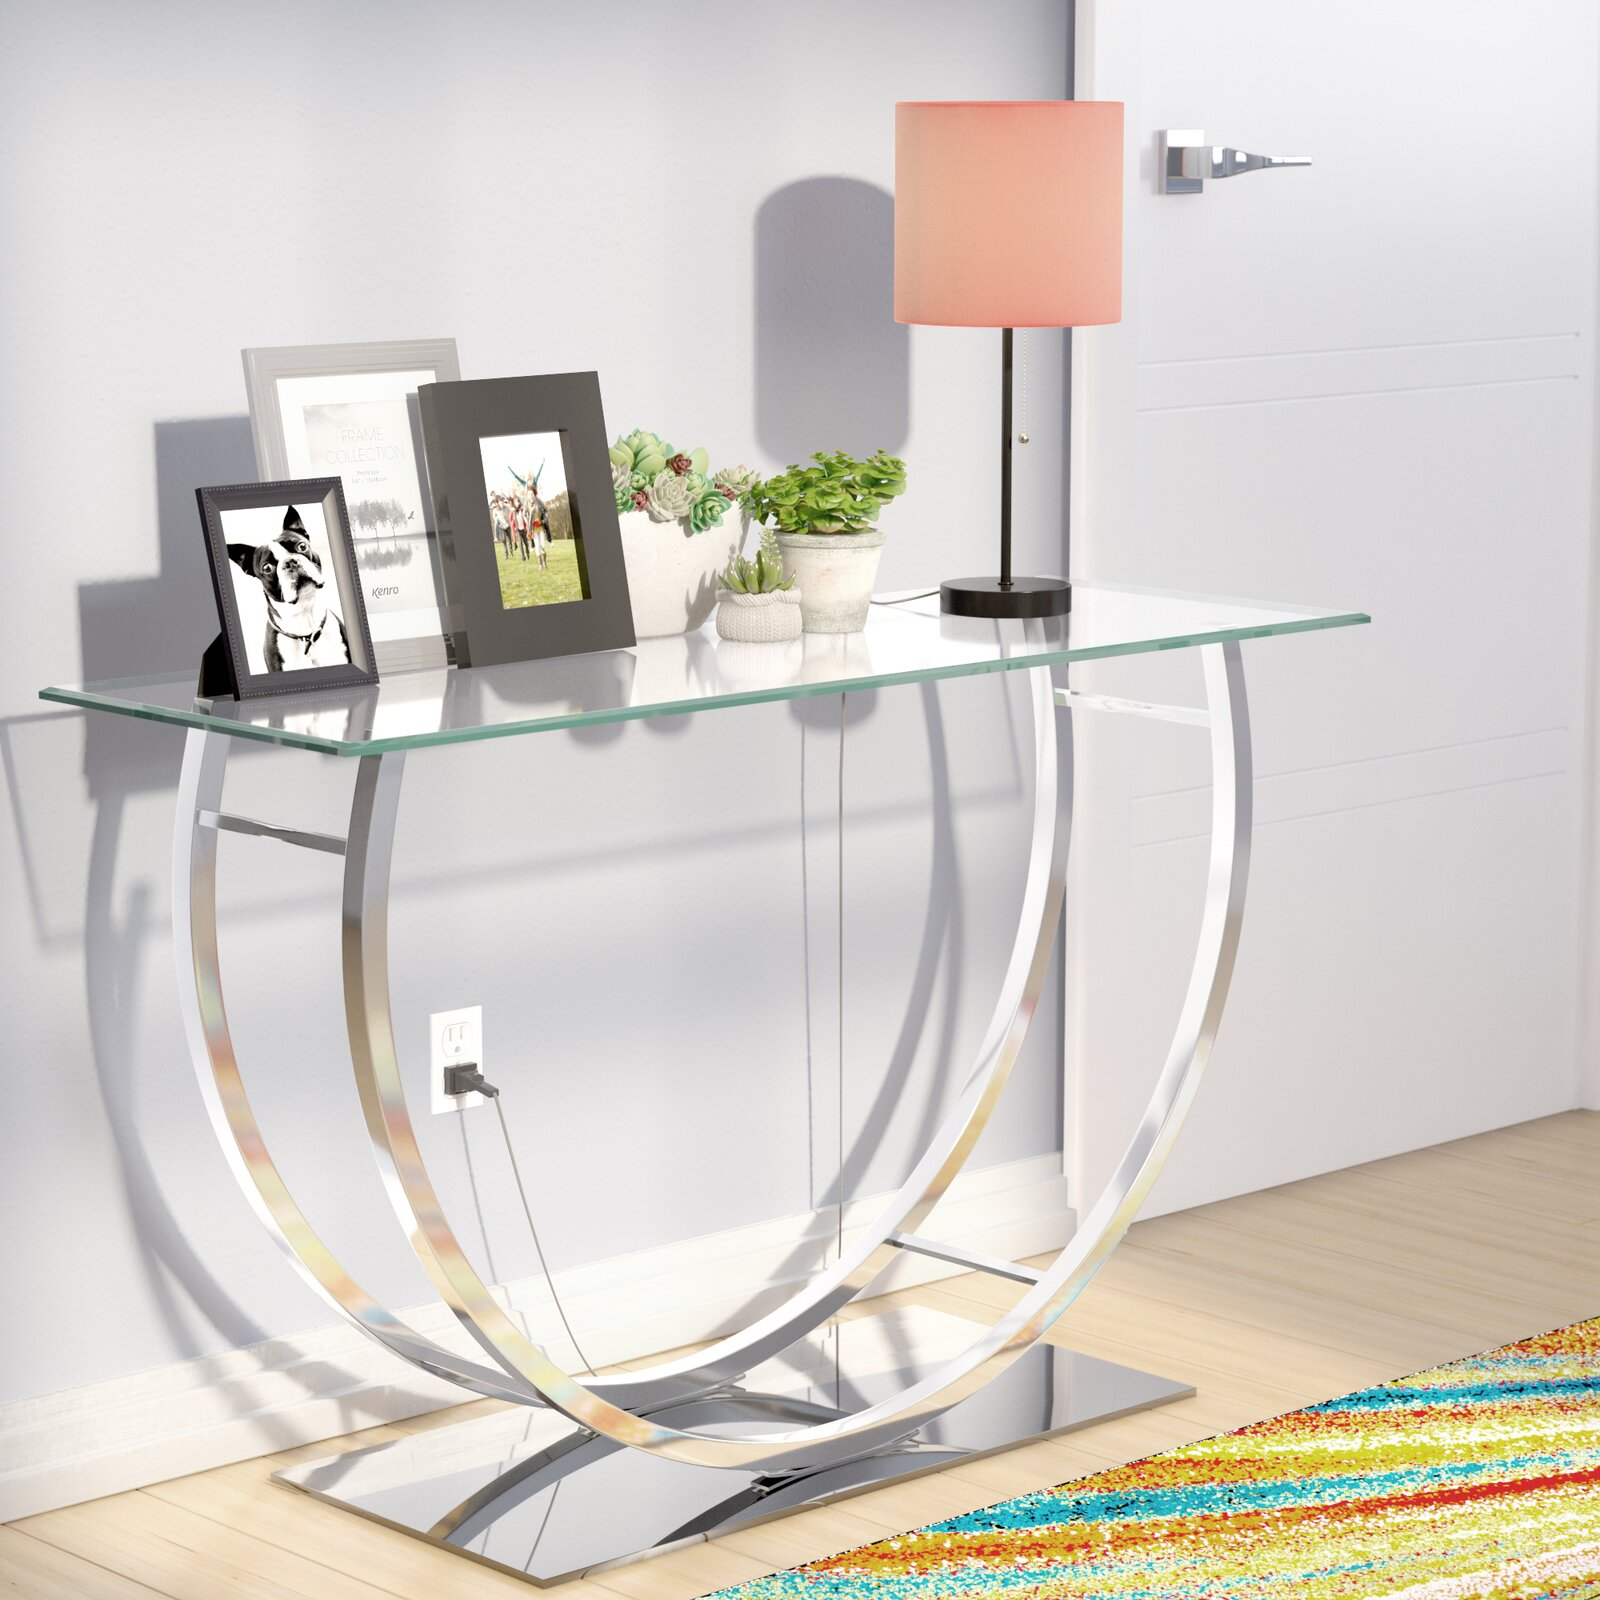 Chrome and Glass for a Modern Hallway Console Table